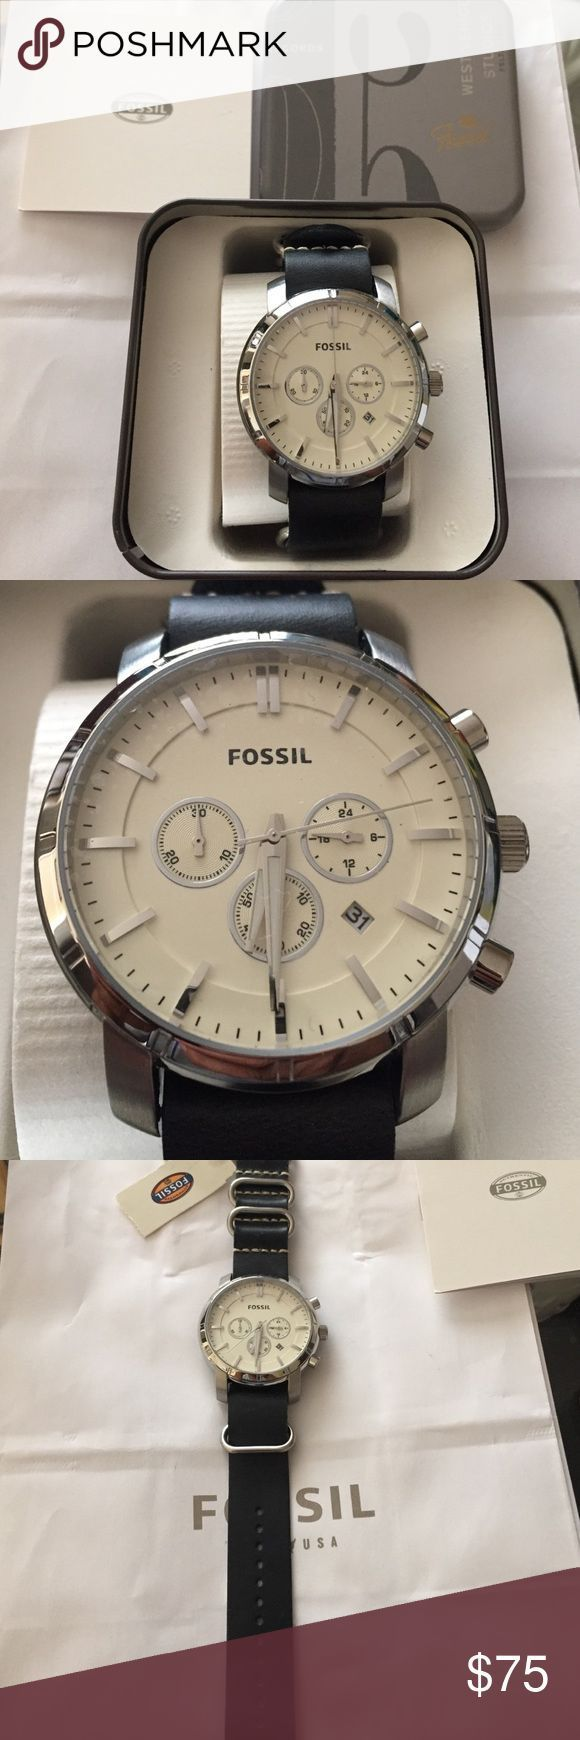 FOSSIL MENS  Watch Brand-new in box fossil men's watch Black bracelet silver and white watch. Fossil Accessories Watches - sale mens watches, mens gold watches for sale, mens white watches #menswatchesminimalist